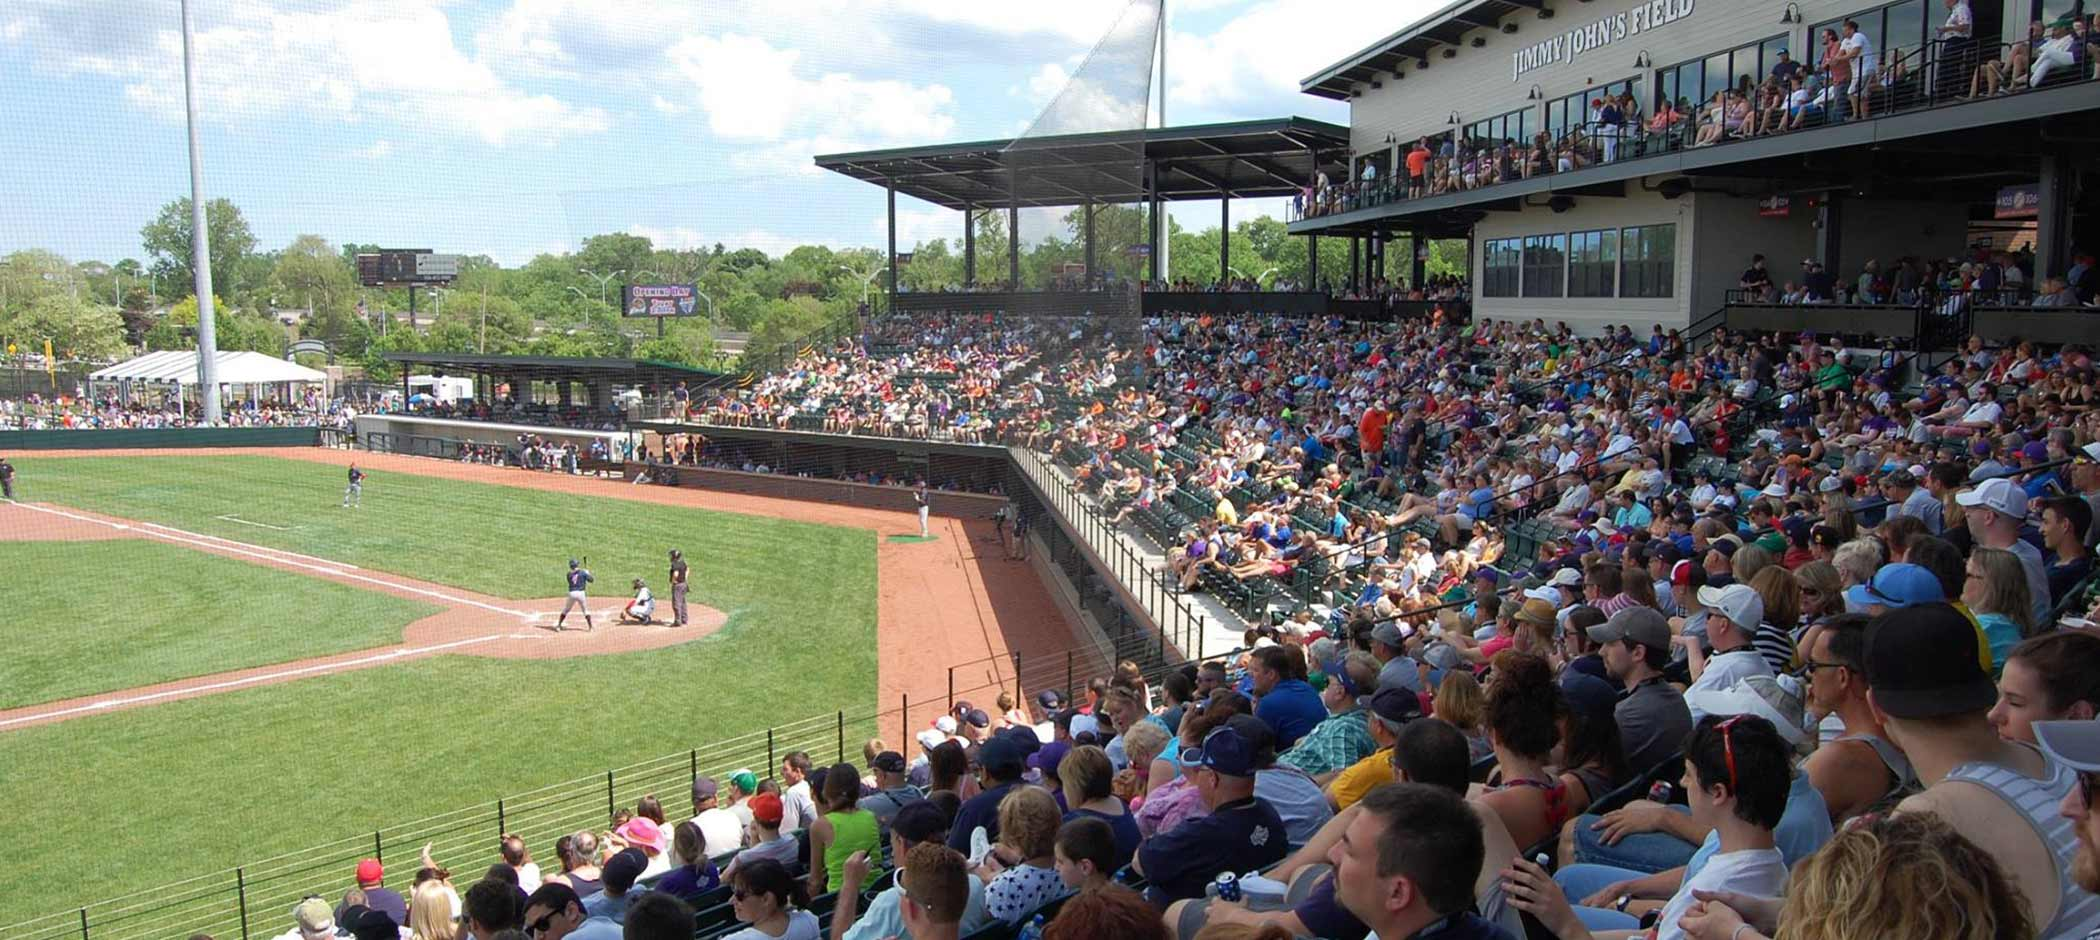 Jimmy John's Field and United Shore Professional Baseball League with fans